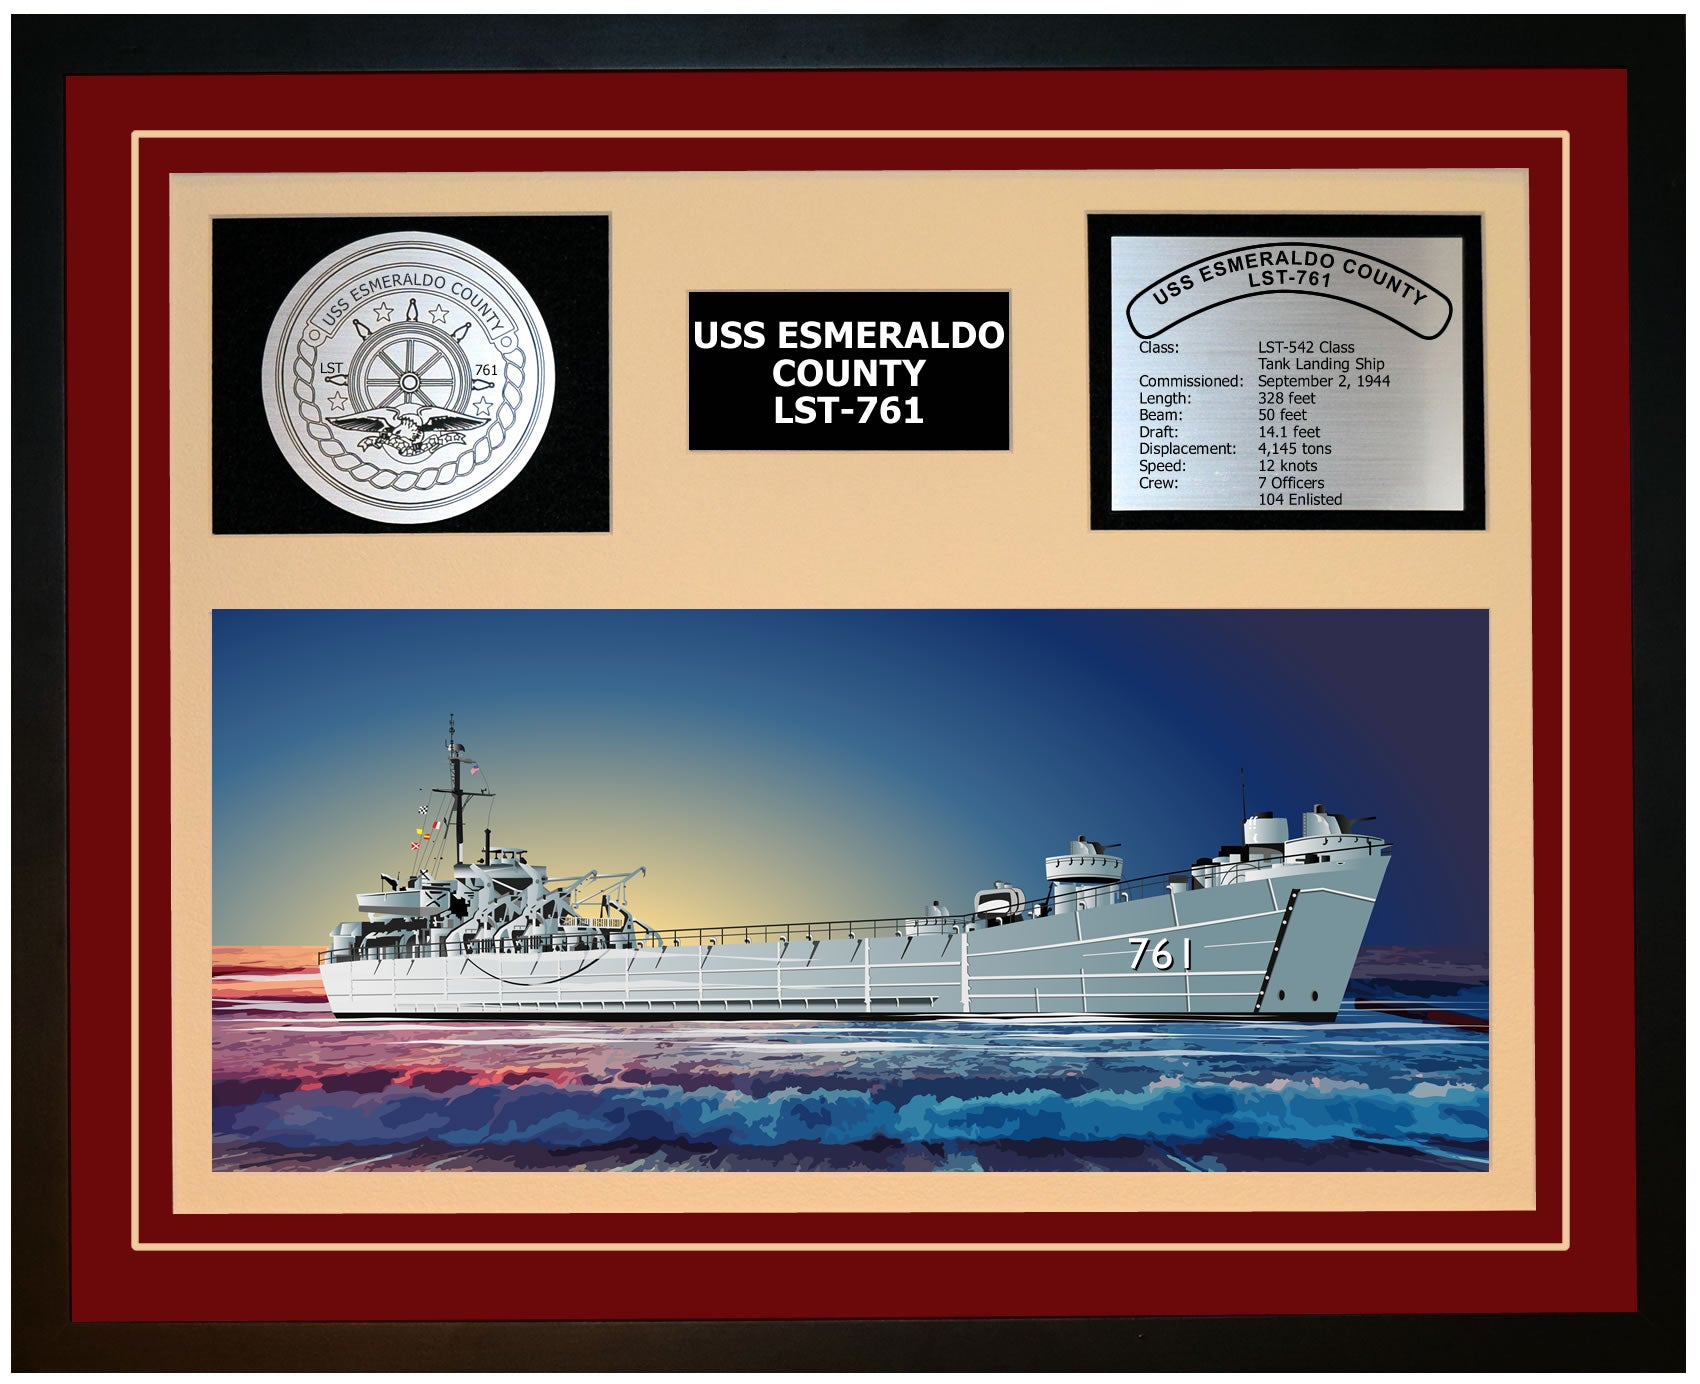 USS ESMERALDO COUNTY LST-761 Framed Navy Ship Display Burgundy